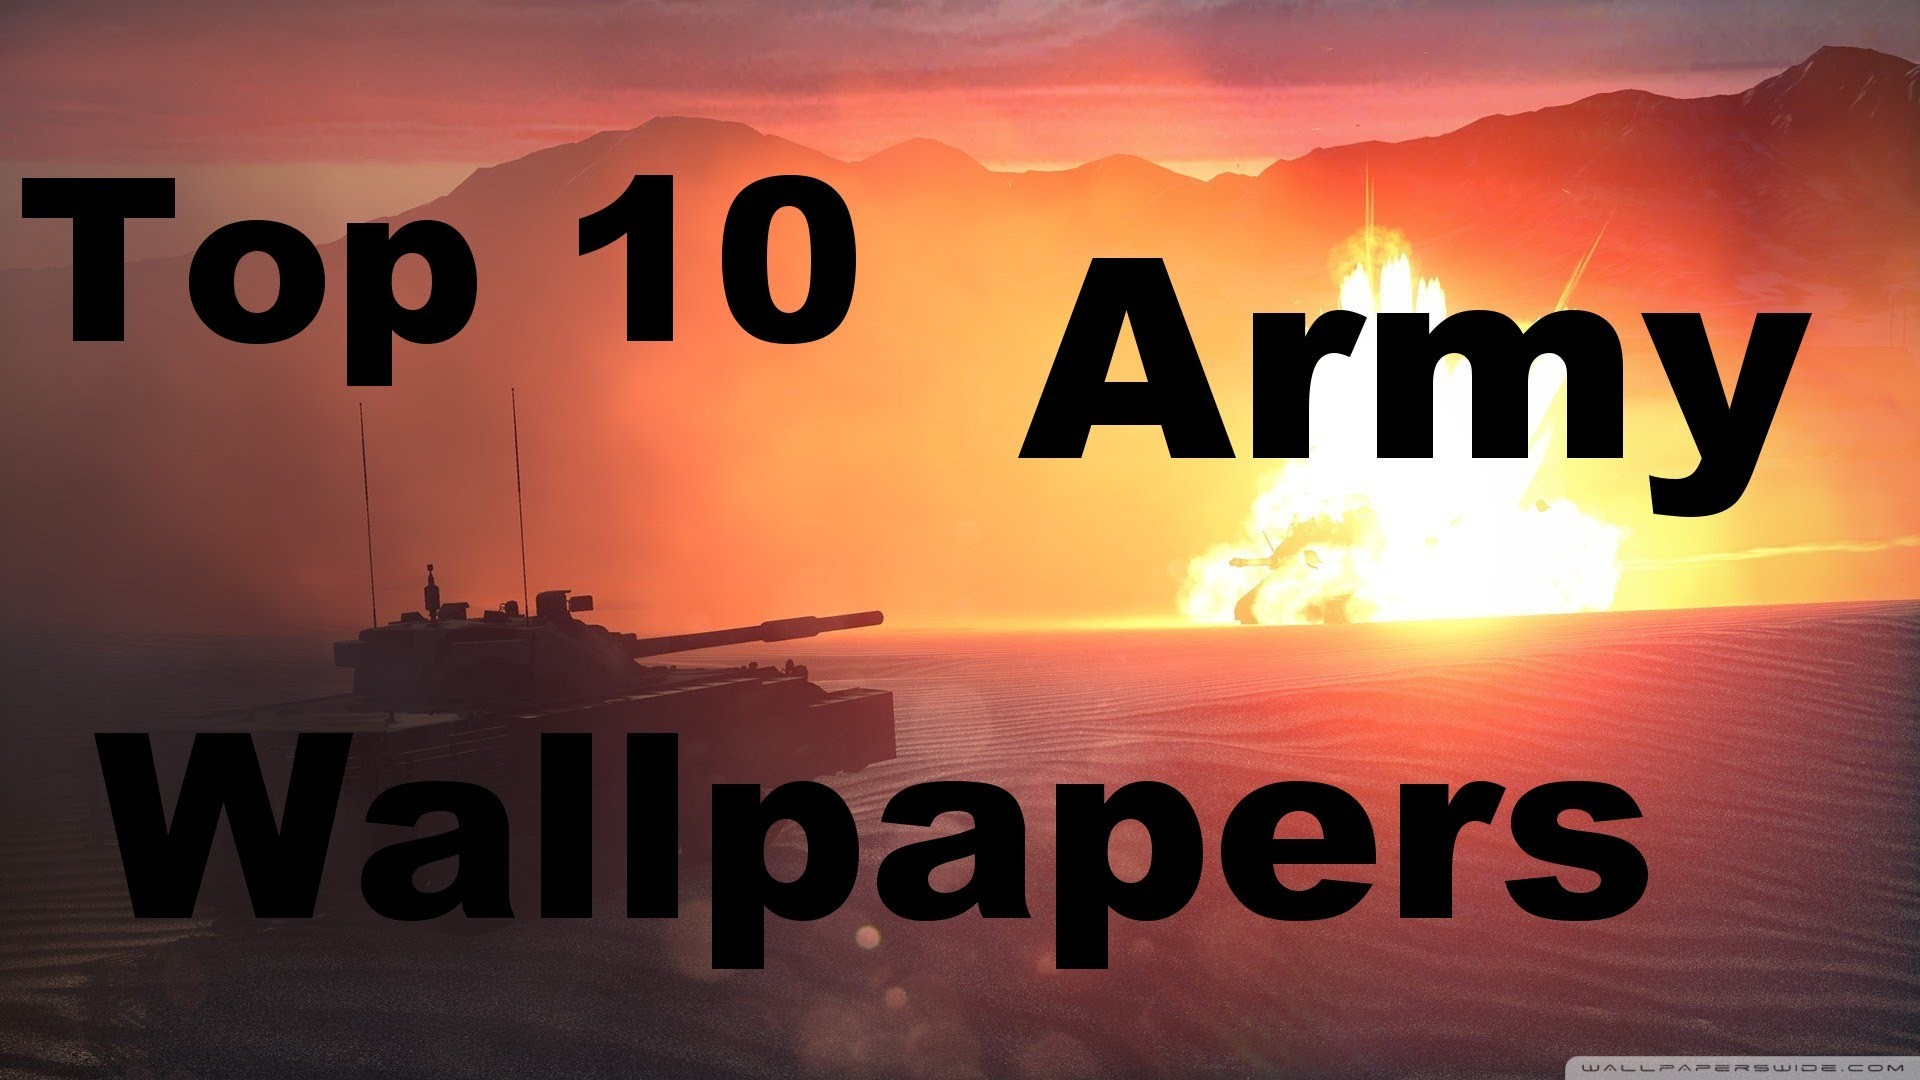 1920x1080 Top 10 Army Wallpapers HD + DOWNLOAD